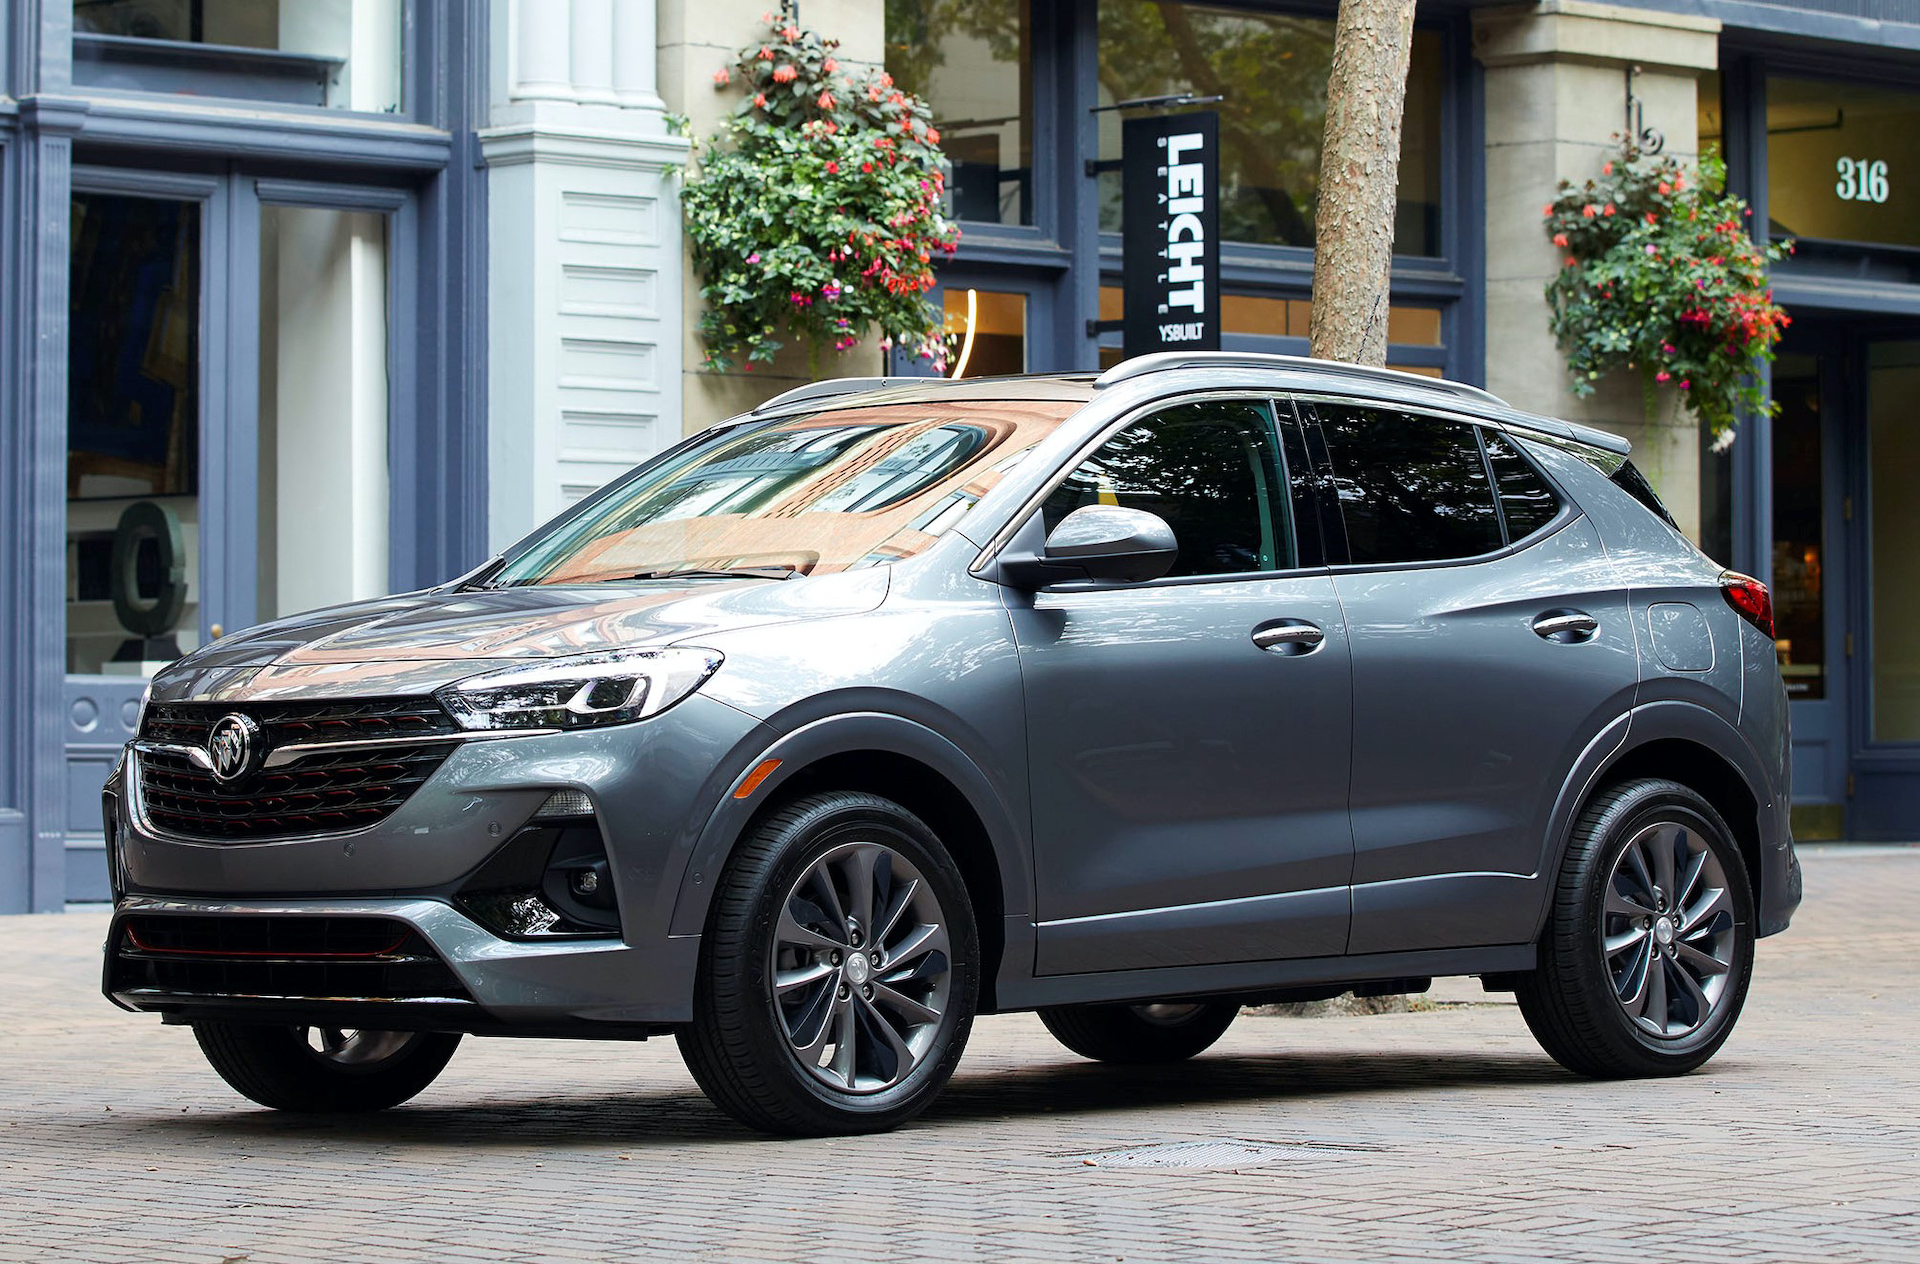 2021 Buick Encore Review, Ratings, Specs, Prices, And Photos New 2021 Buick Encore Gx Safety Rating, Specifications, Tire Size